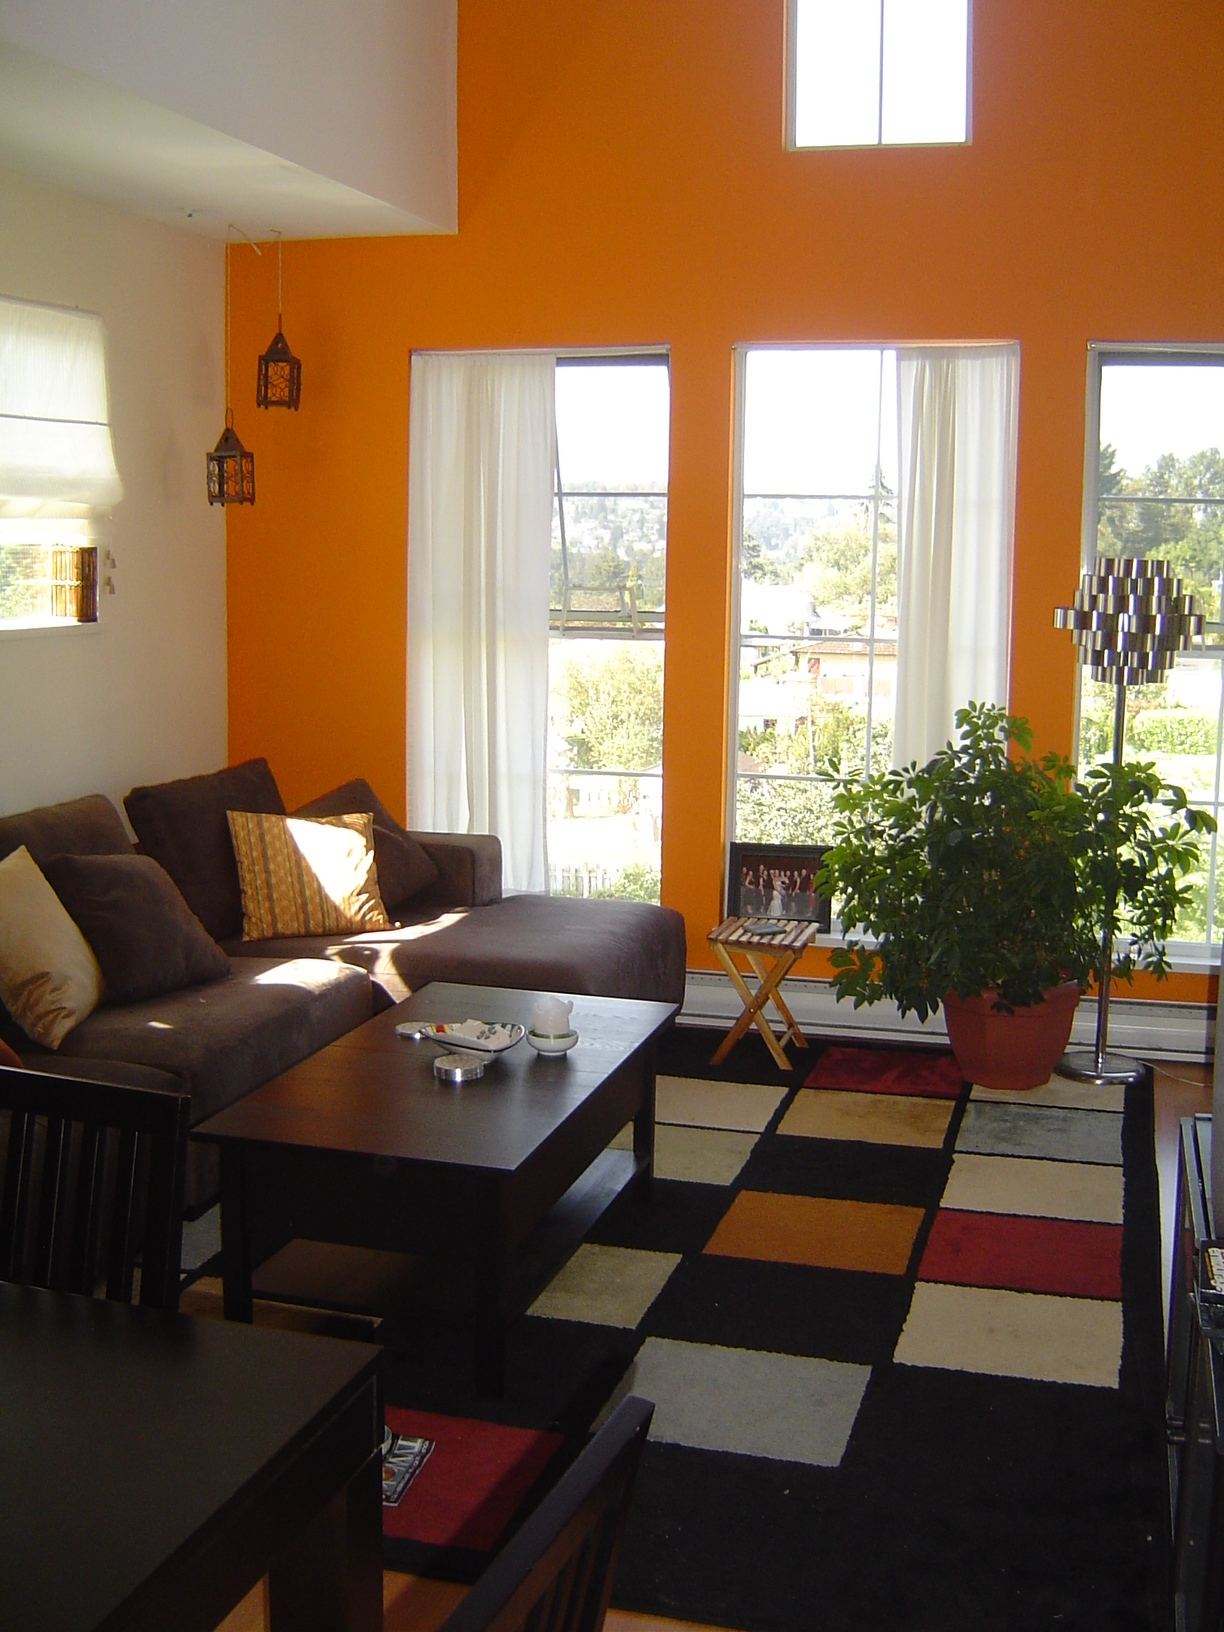 28 stunning orange living room designs ideas decoration love Orange and red living room design